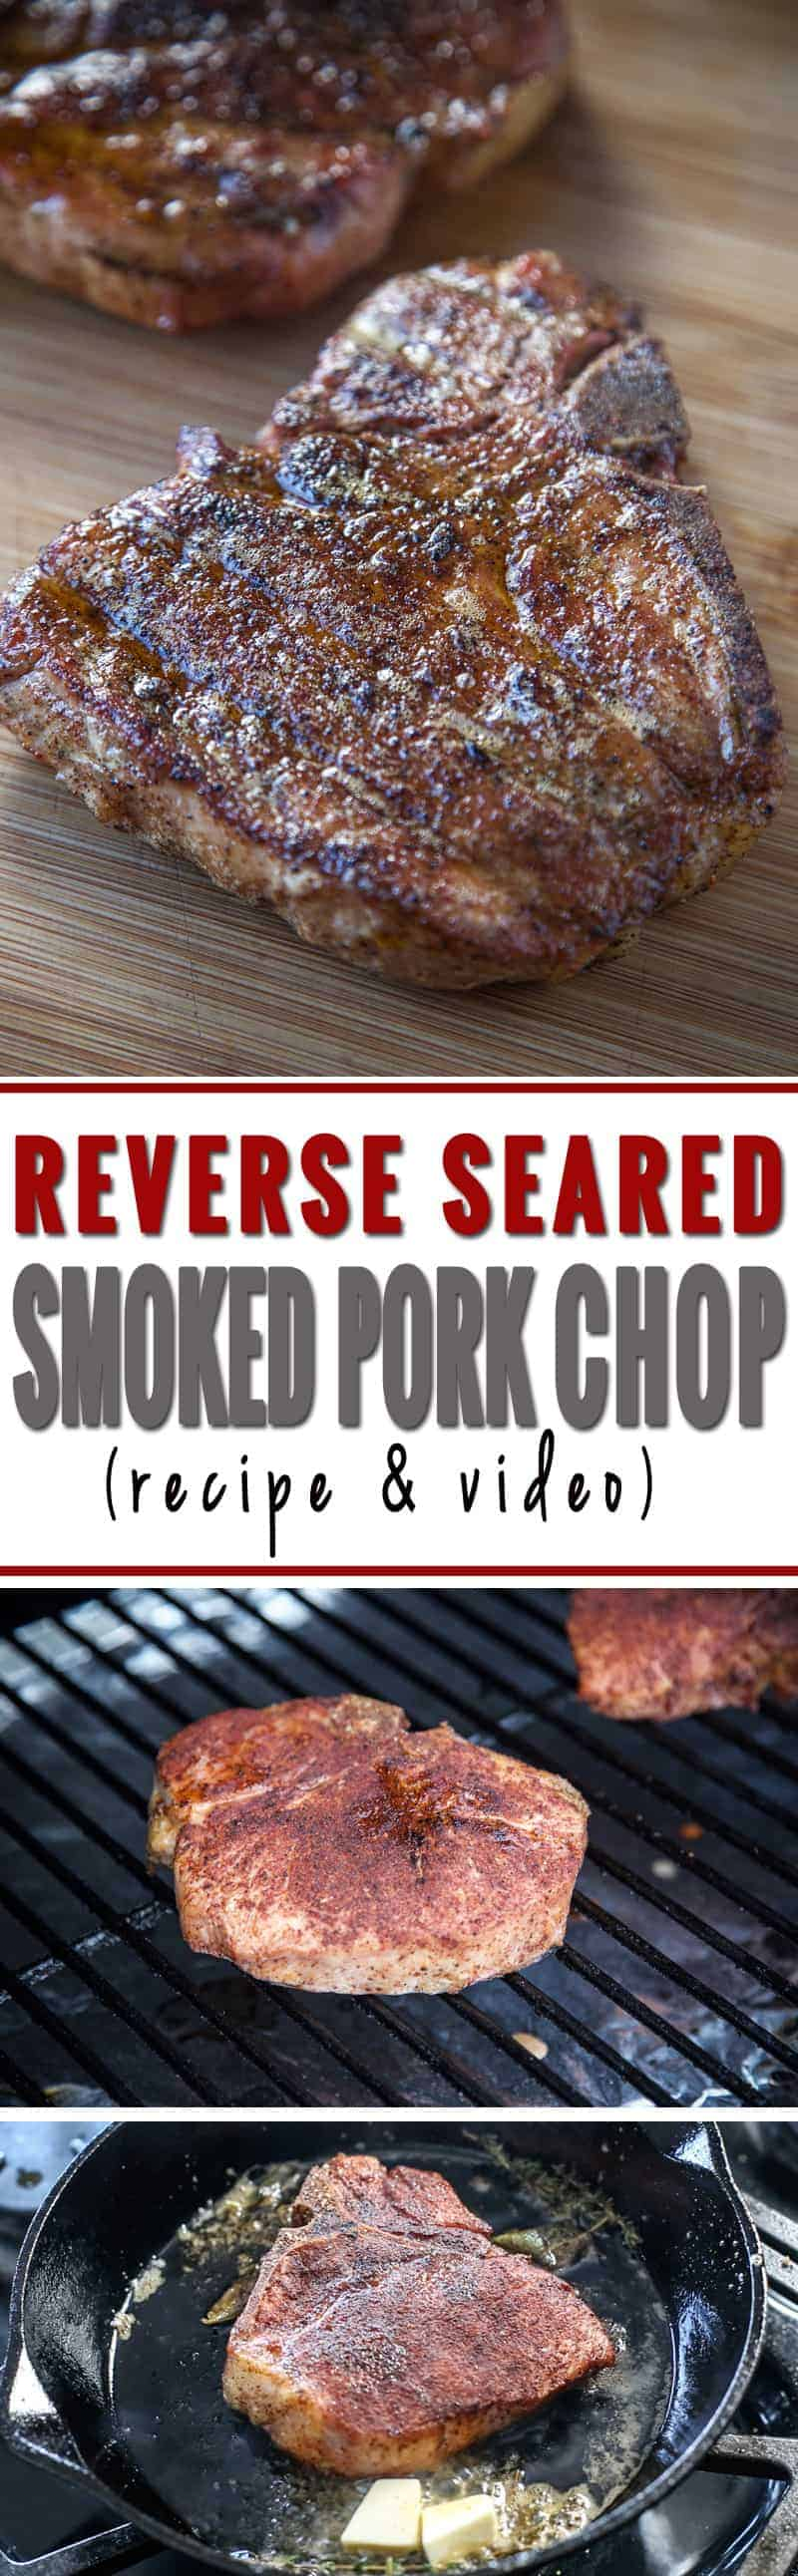 Reverse Seared Smoked Pork Chop. These ain't your Mama's pork chops! These are super tender and full of incredible flavor